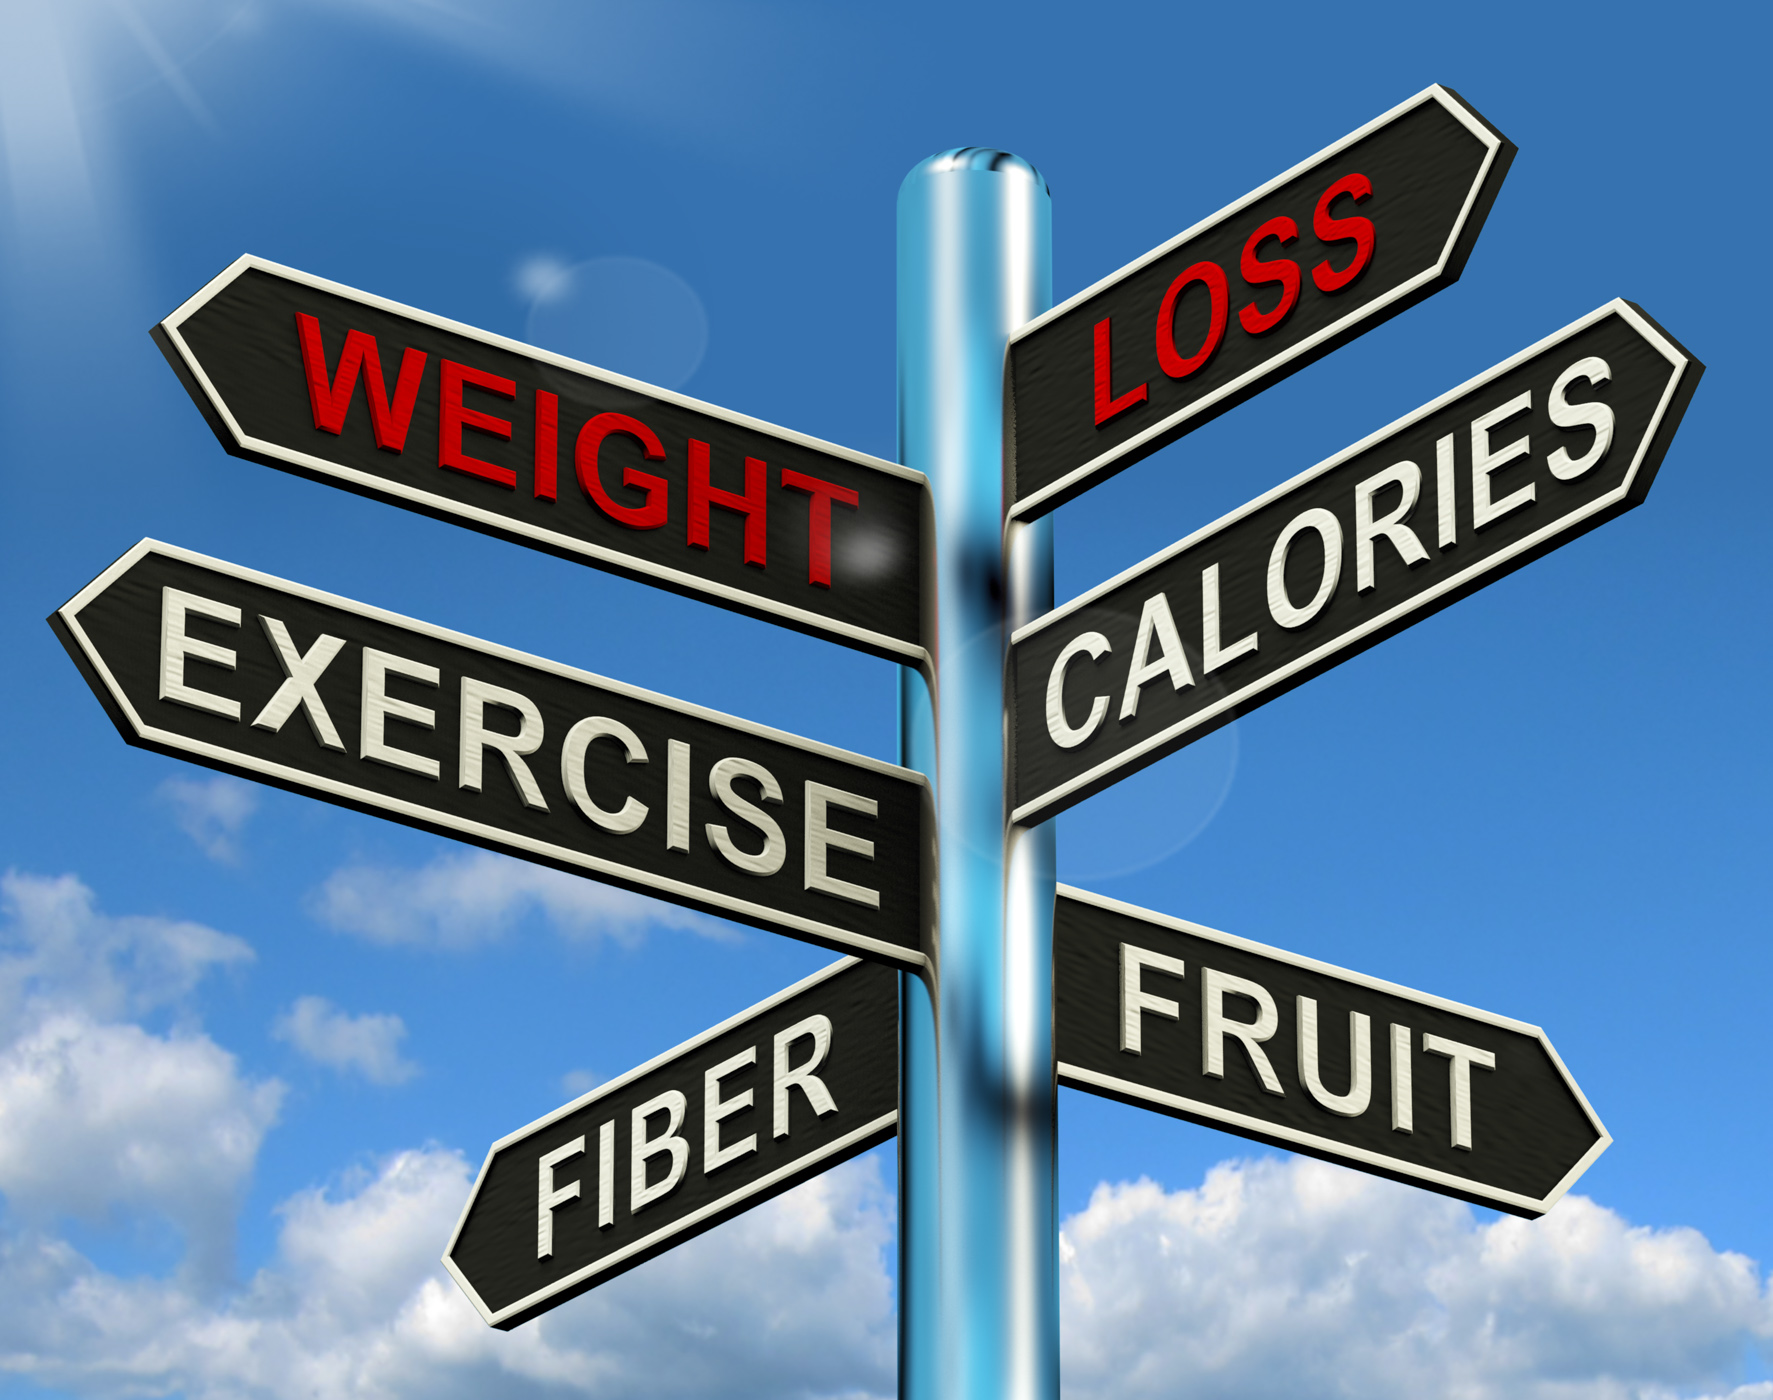 Weight loss signpost showing fiber exercise fruit and calories photo